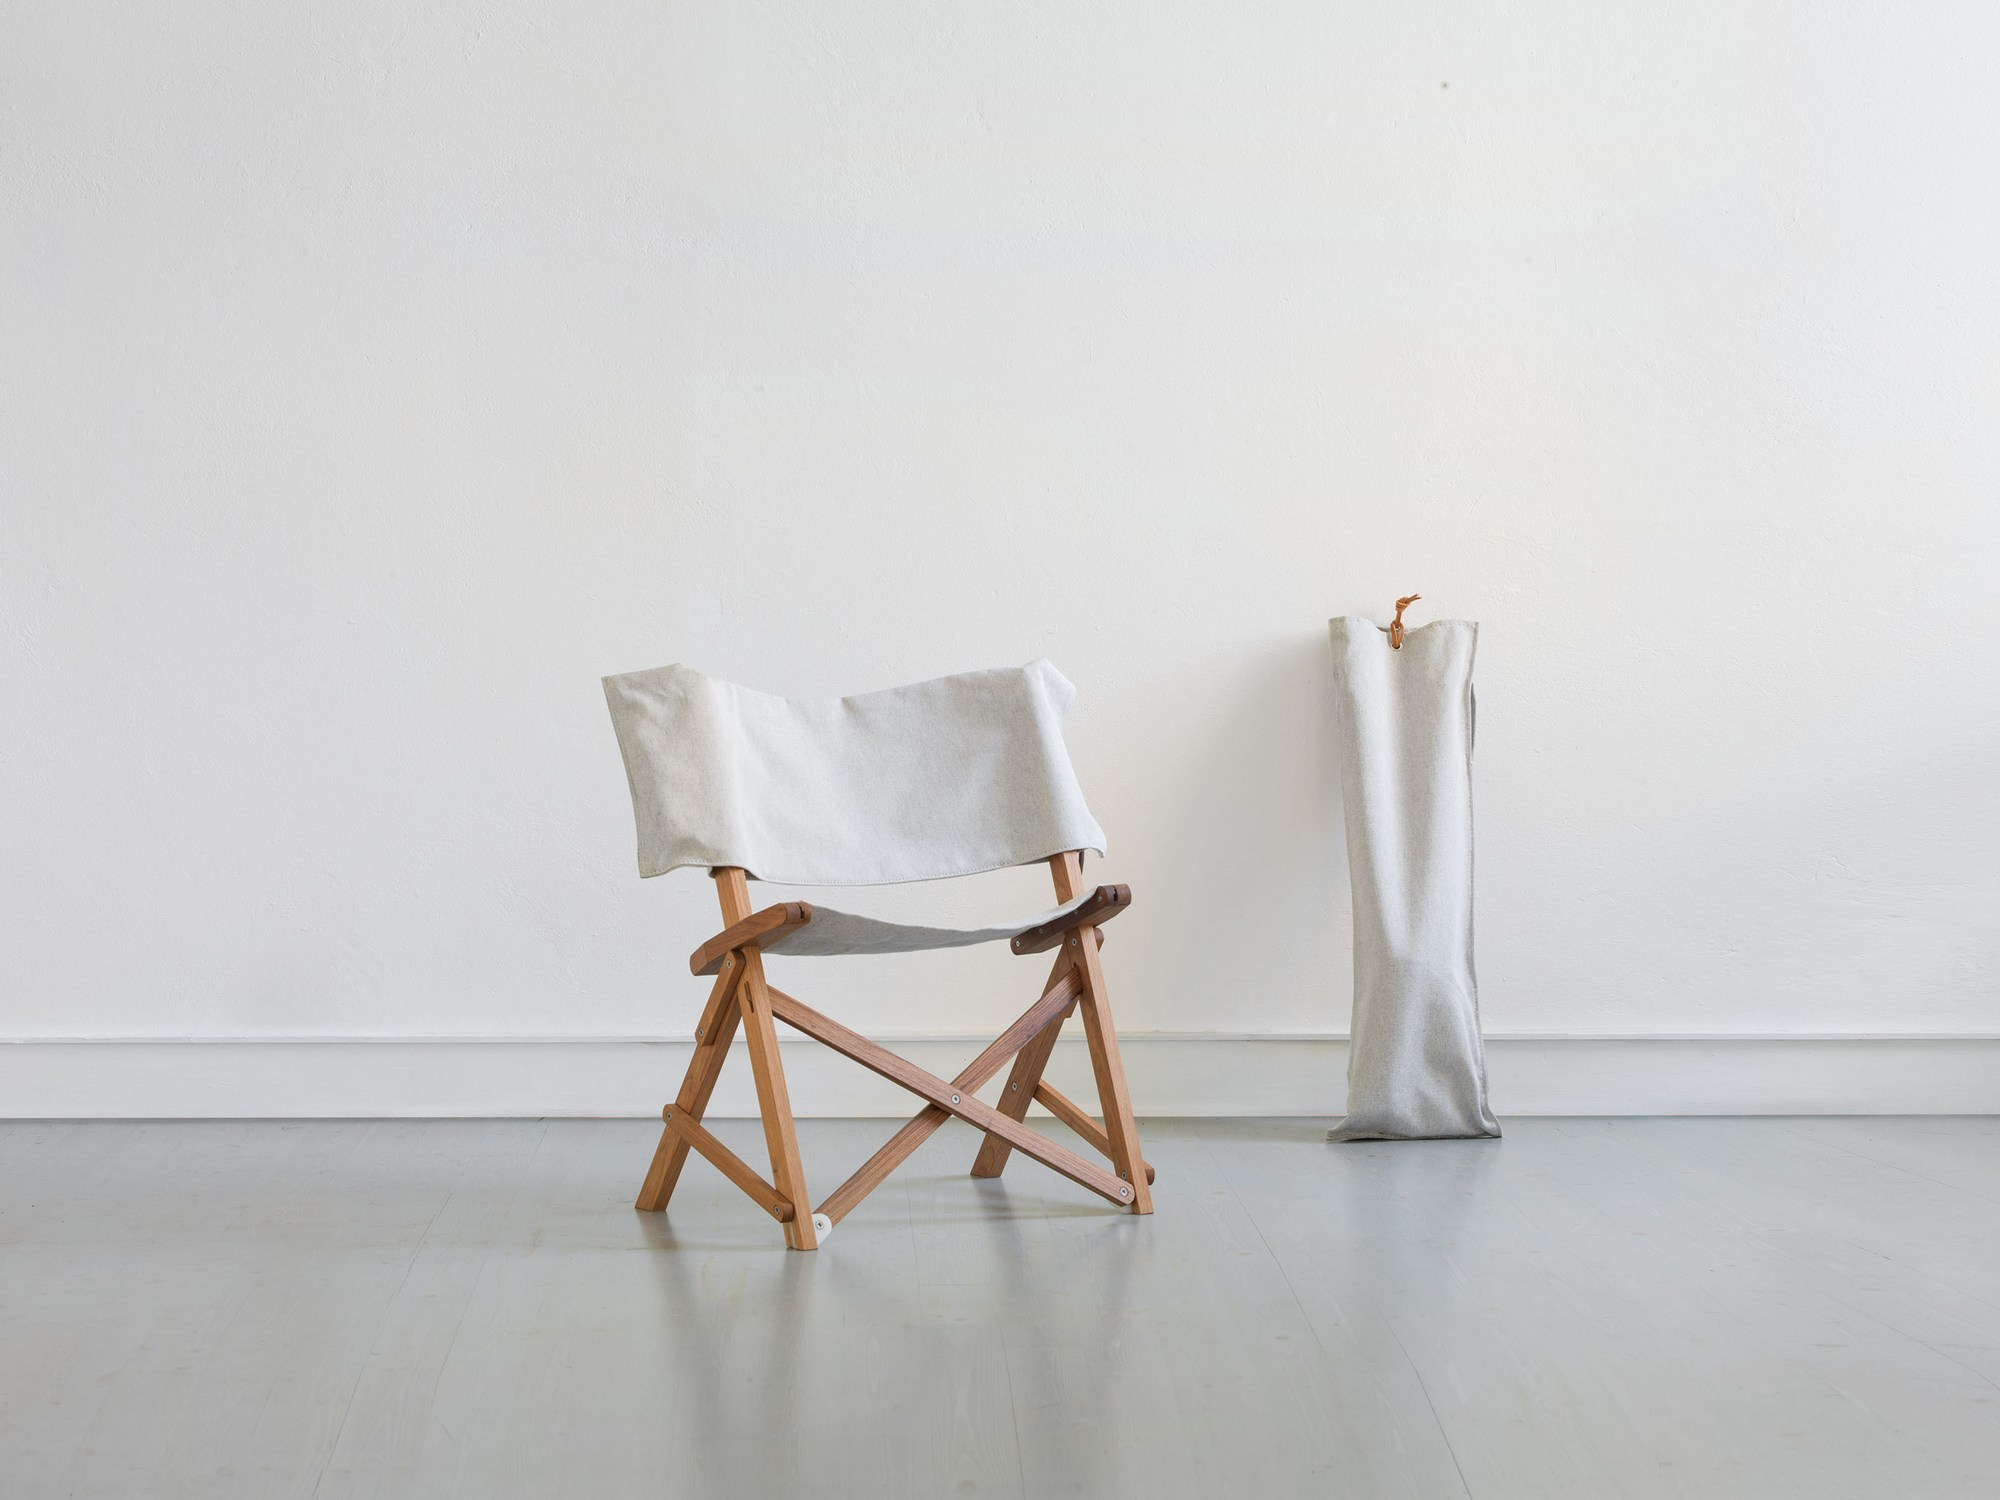 """Folding Solid Wood Chair """"Dino"""" by Manifesto Design"""